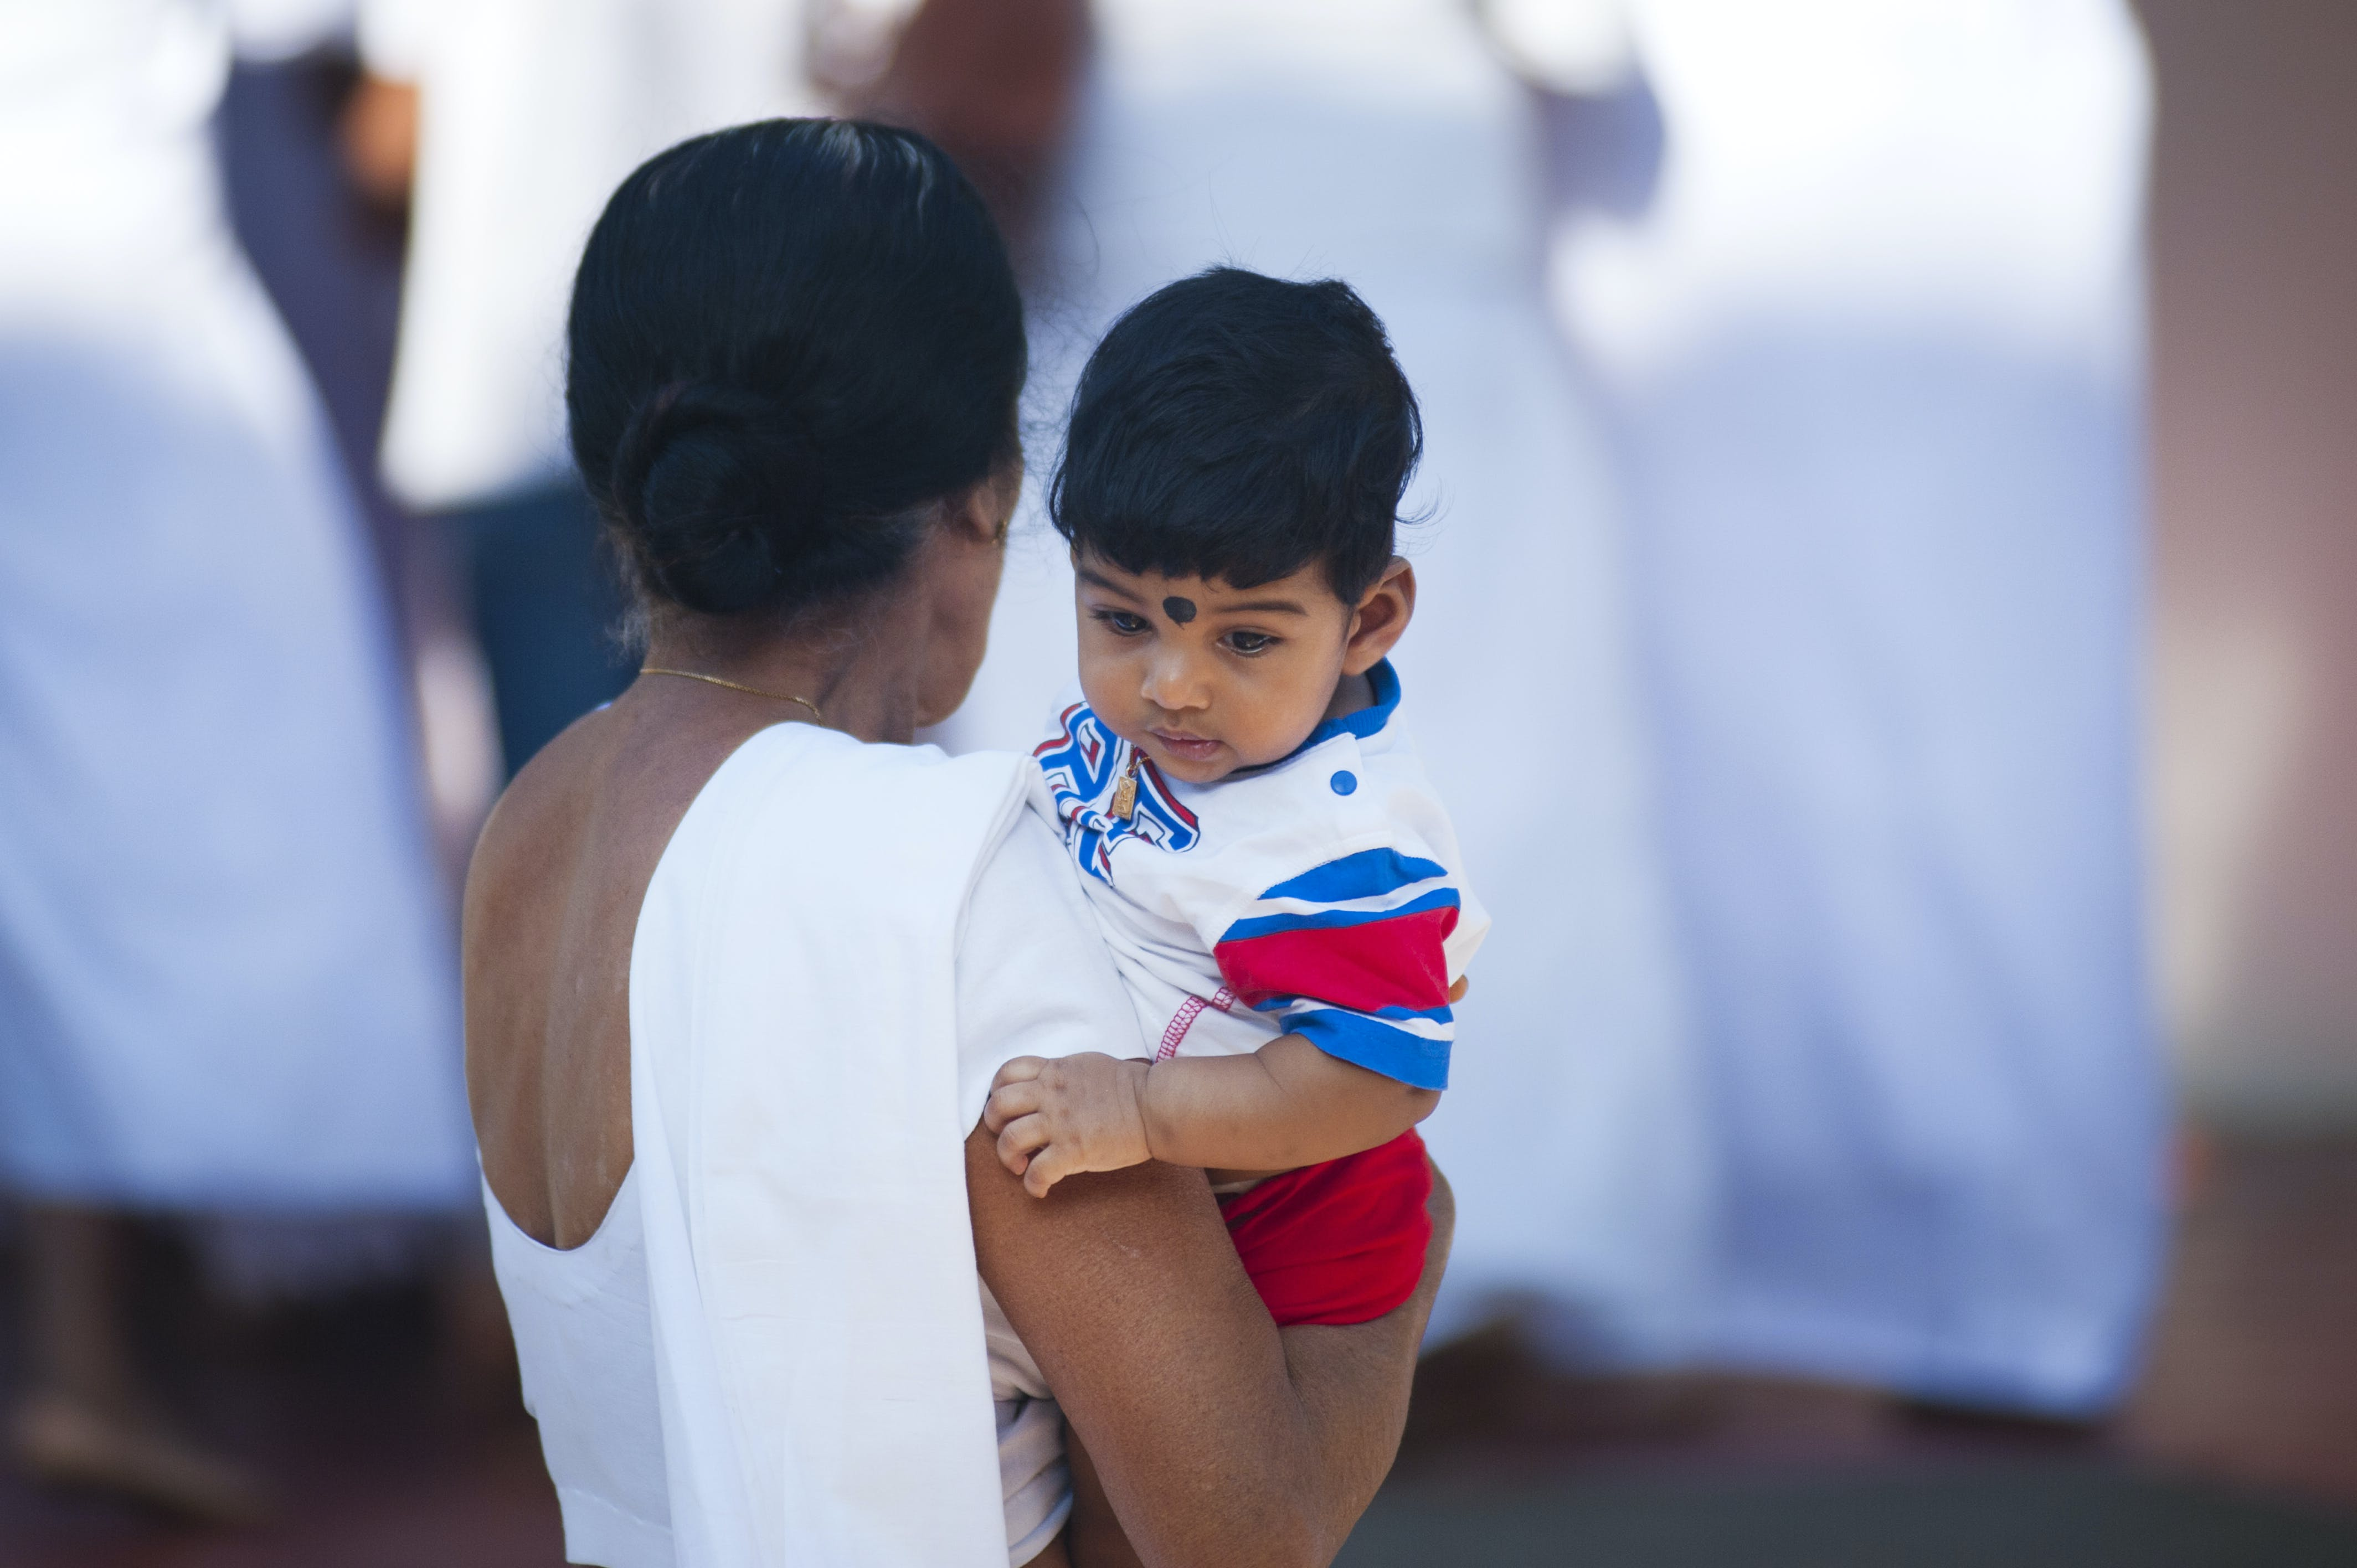 Selective Focus Photography of Woman Holding Child